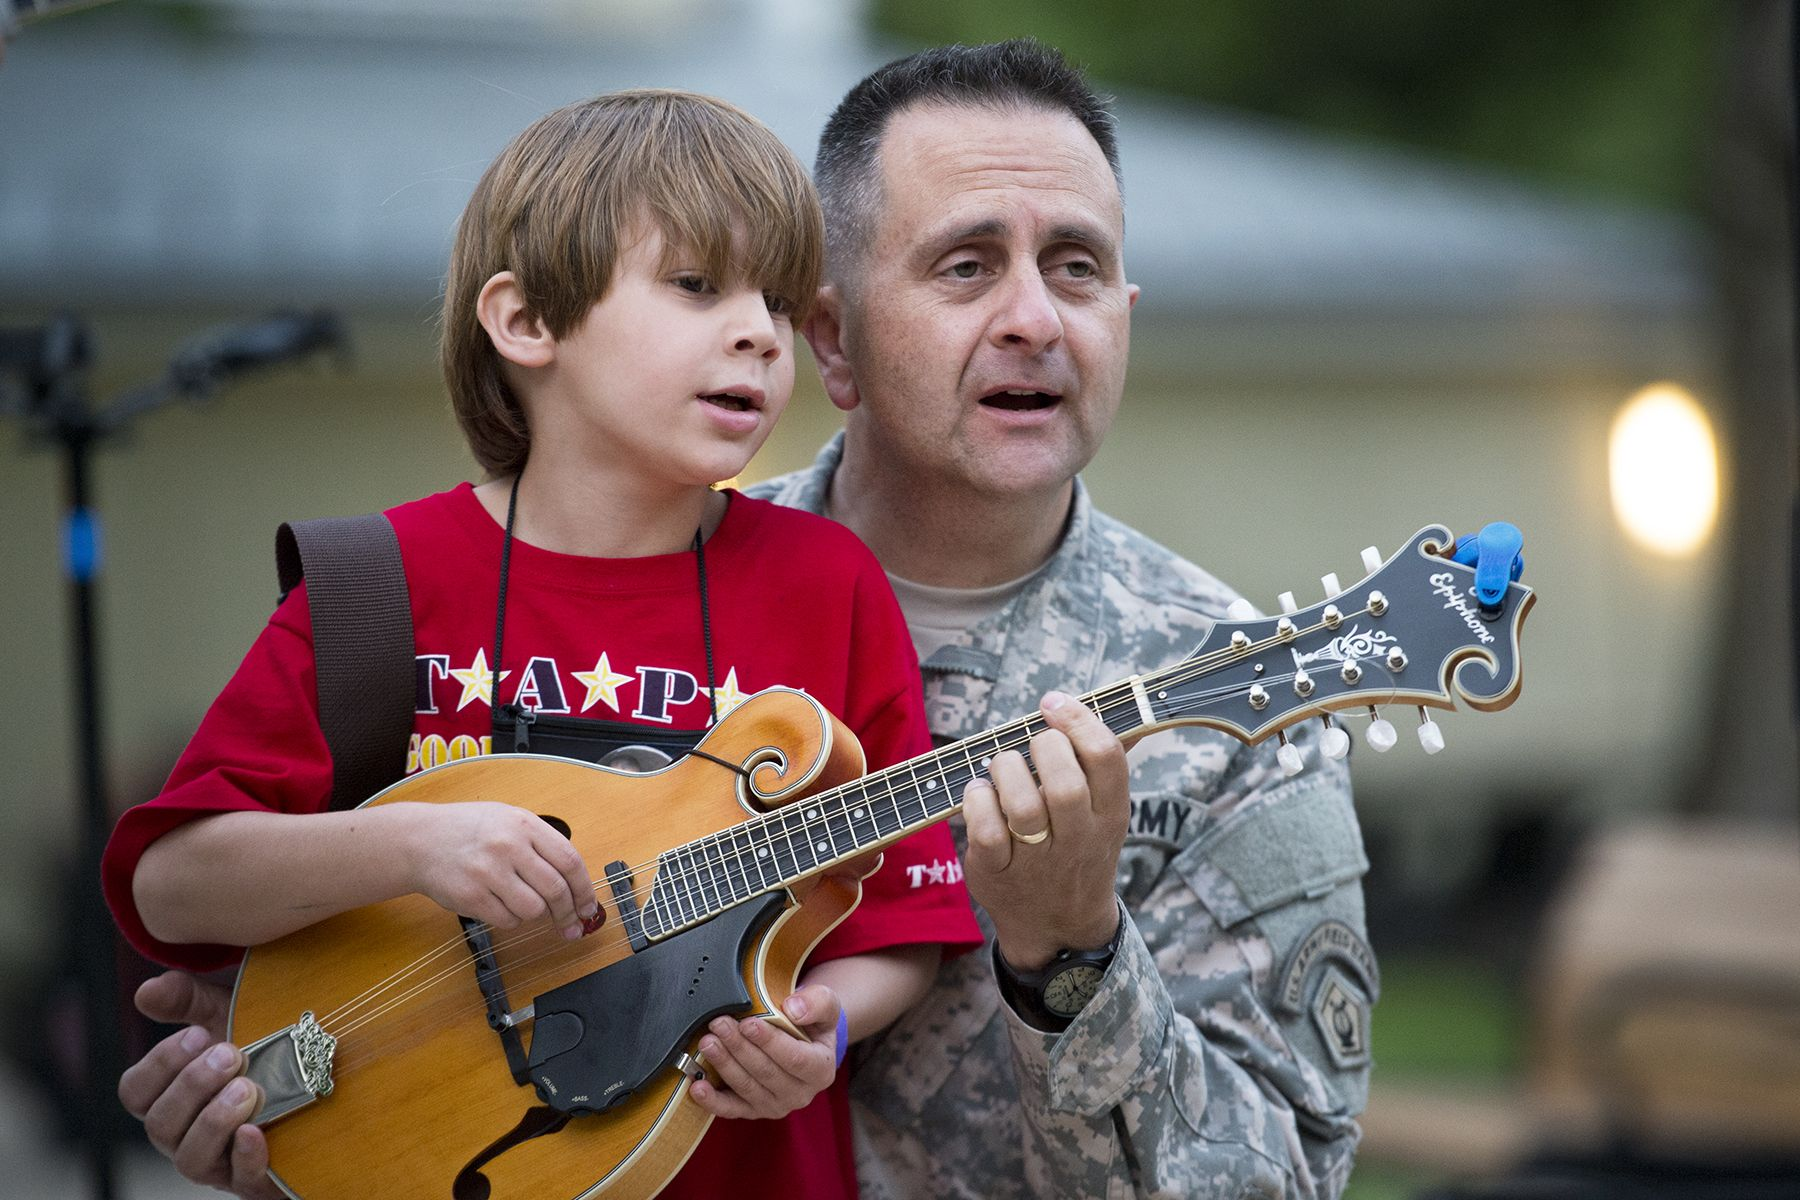 Jason Thomas, 6, plays mandolin with the help of Army Master Sgt. John Lamirande of the during an event for family members from the Tragedy Assistance Program for Survivors at the Pentagon, May 22, 2015. Lamirande is a member of the U.S. Army Field Band's Six String Soldiers. DoD photo by EJ Hersom